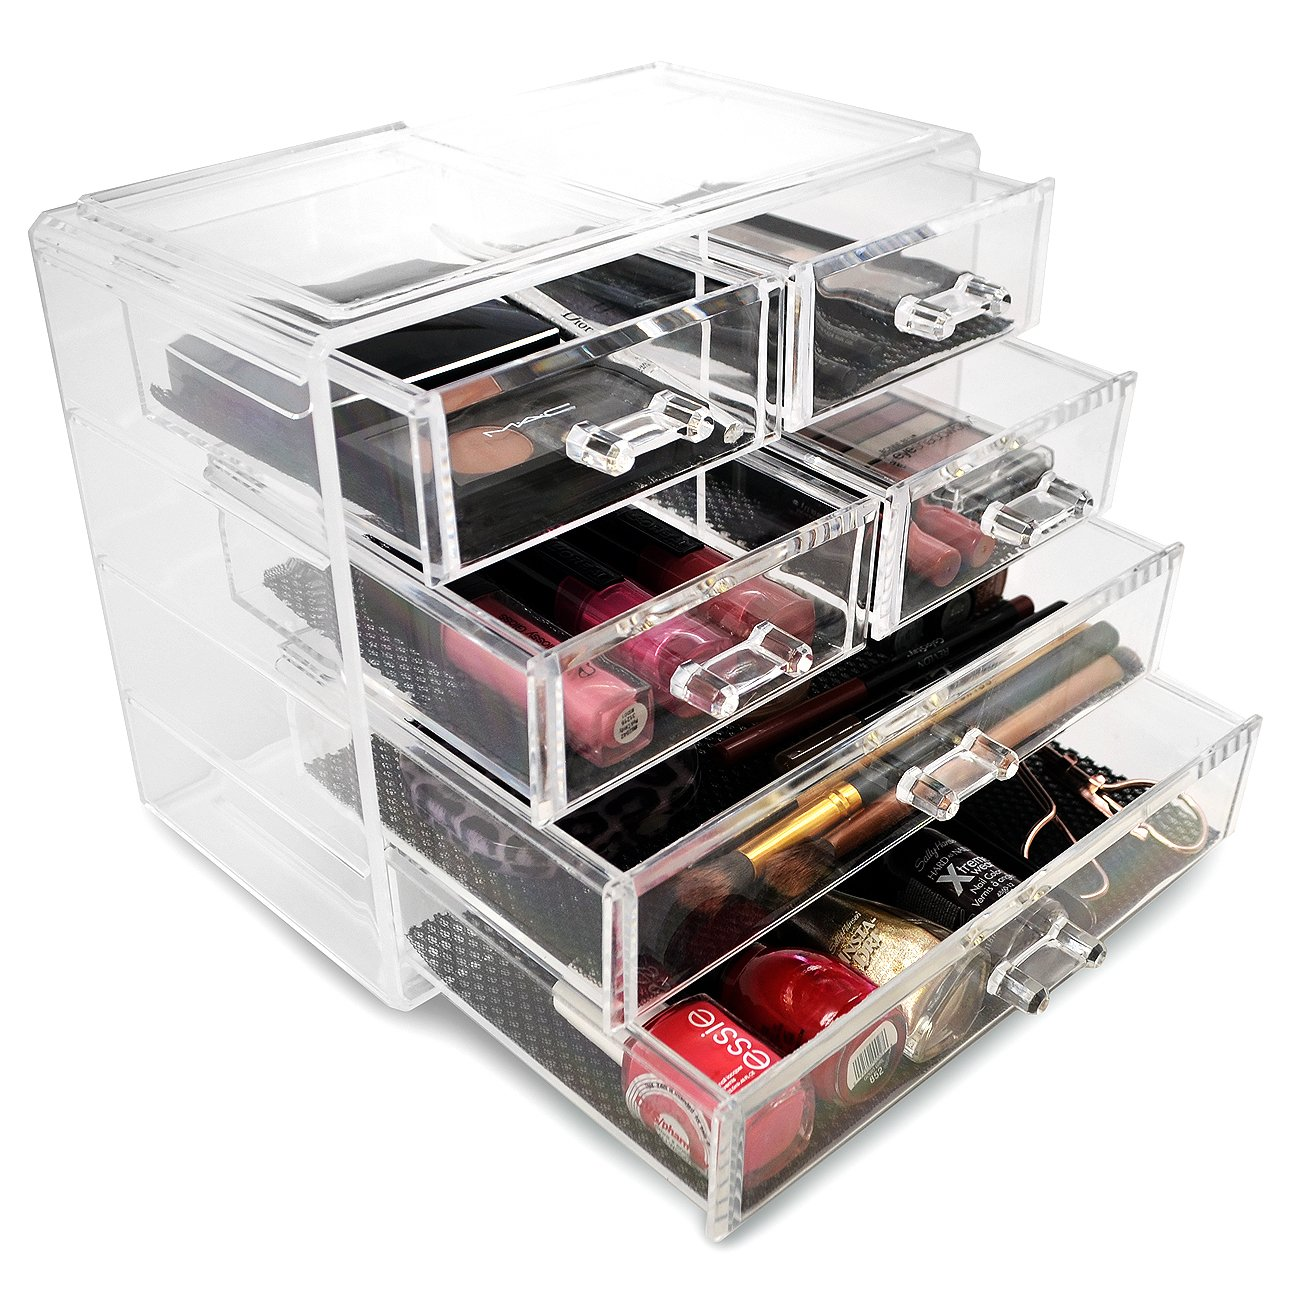 Amazon.com: Sorbus® Acrylic Cosmetics Makeup And Jewelry Storage Case  Display  2 Large And 4 Small Drawers Space  Saving, Stylish Acrylic  Bathroom Case: ...